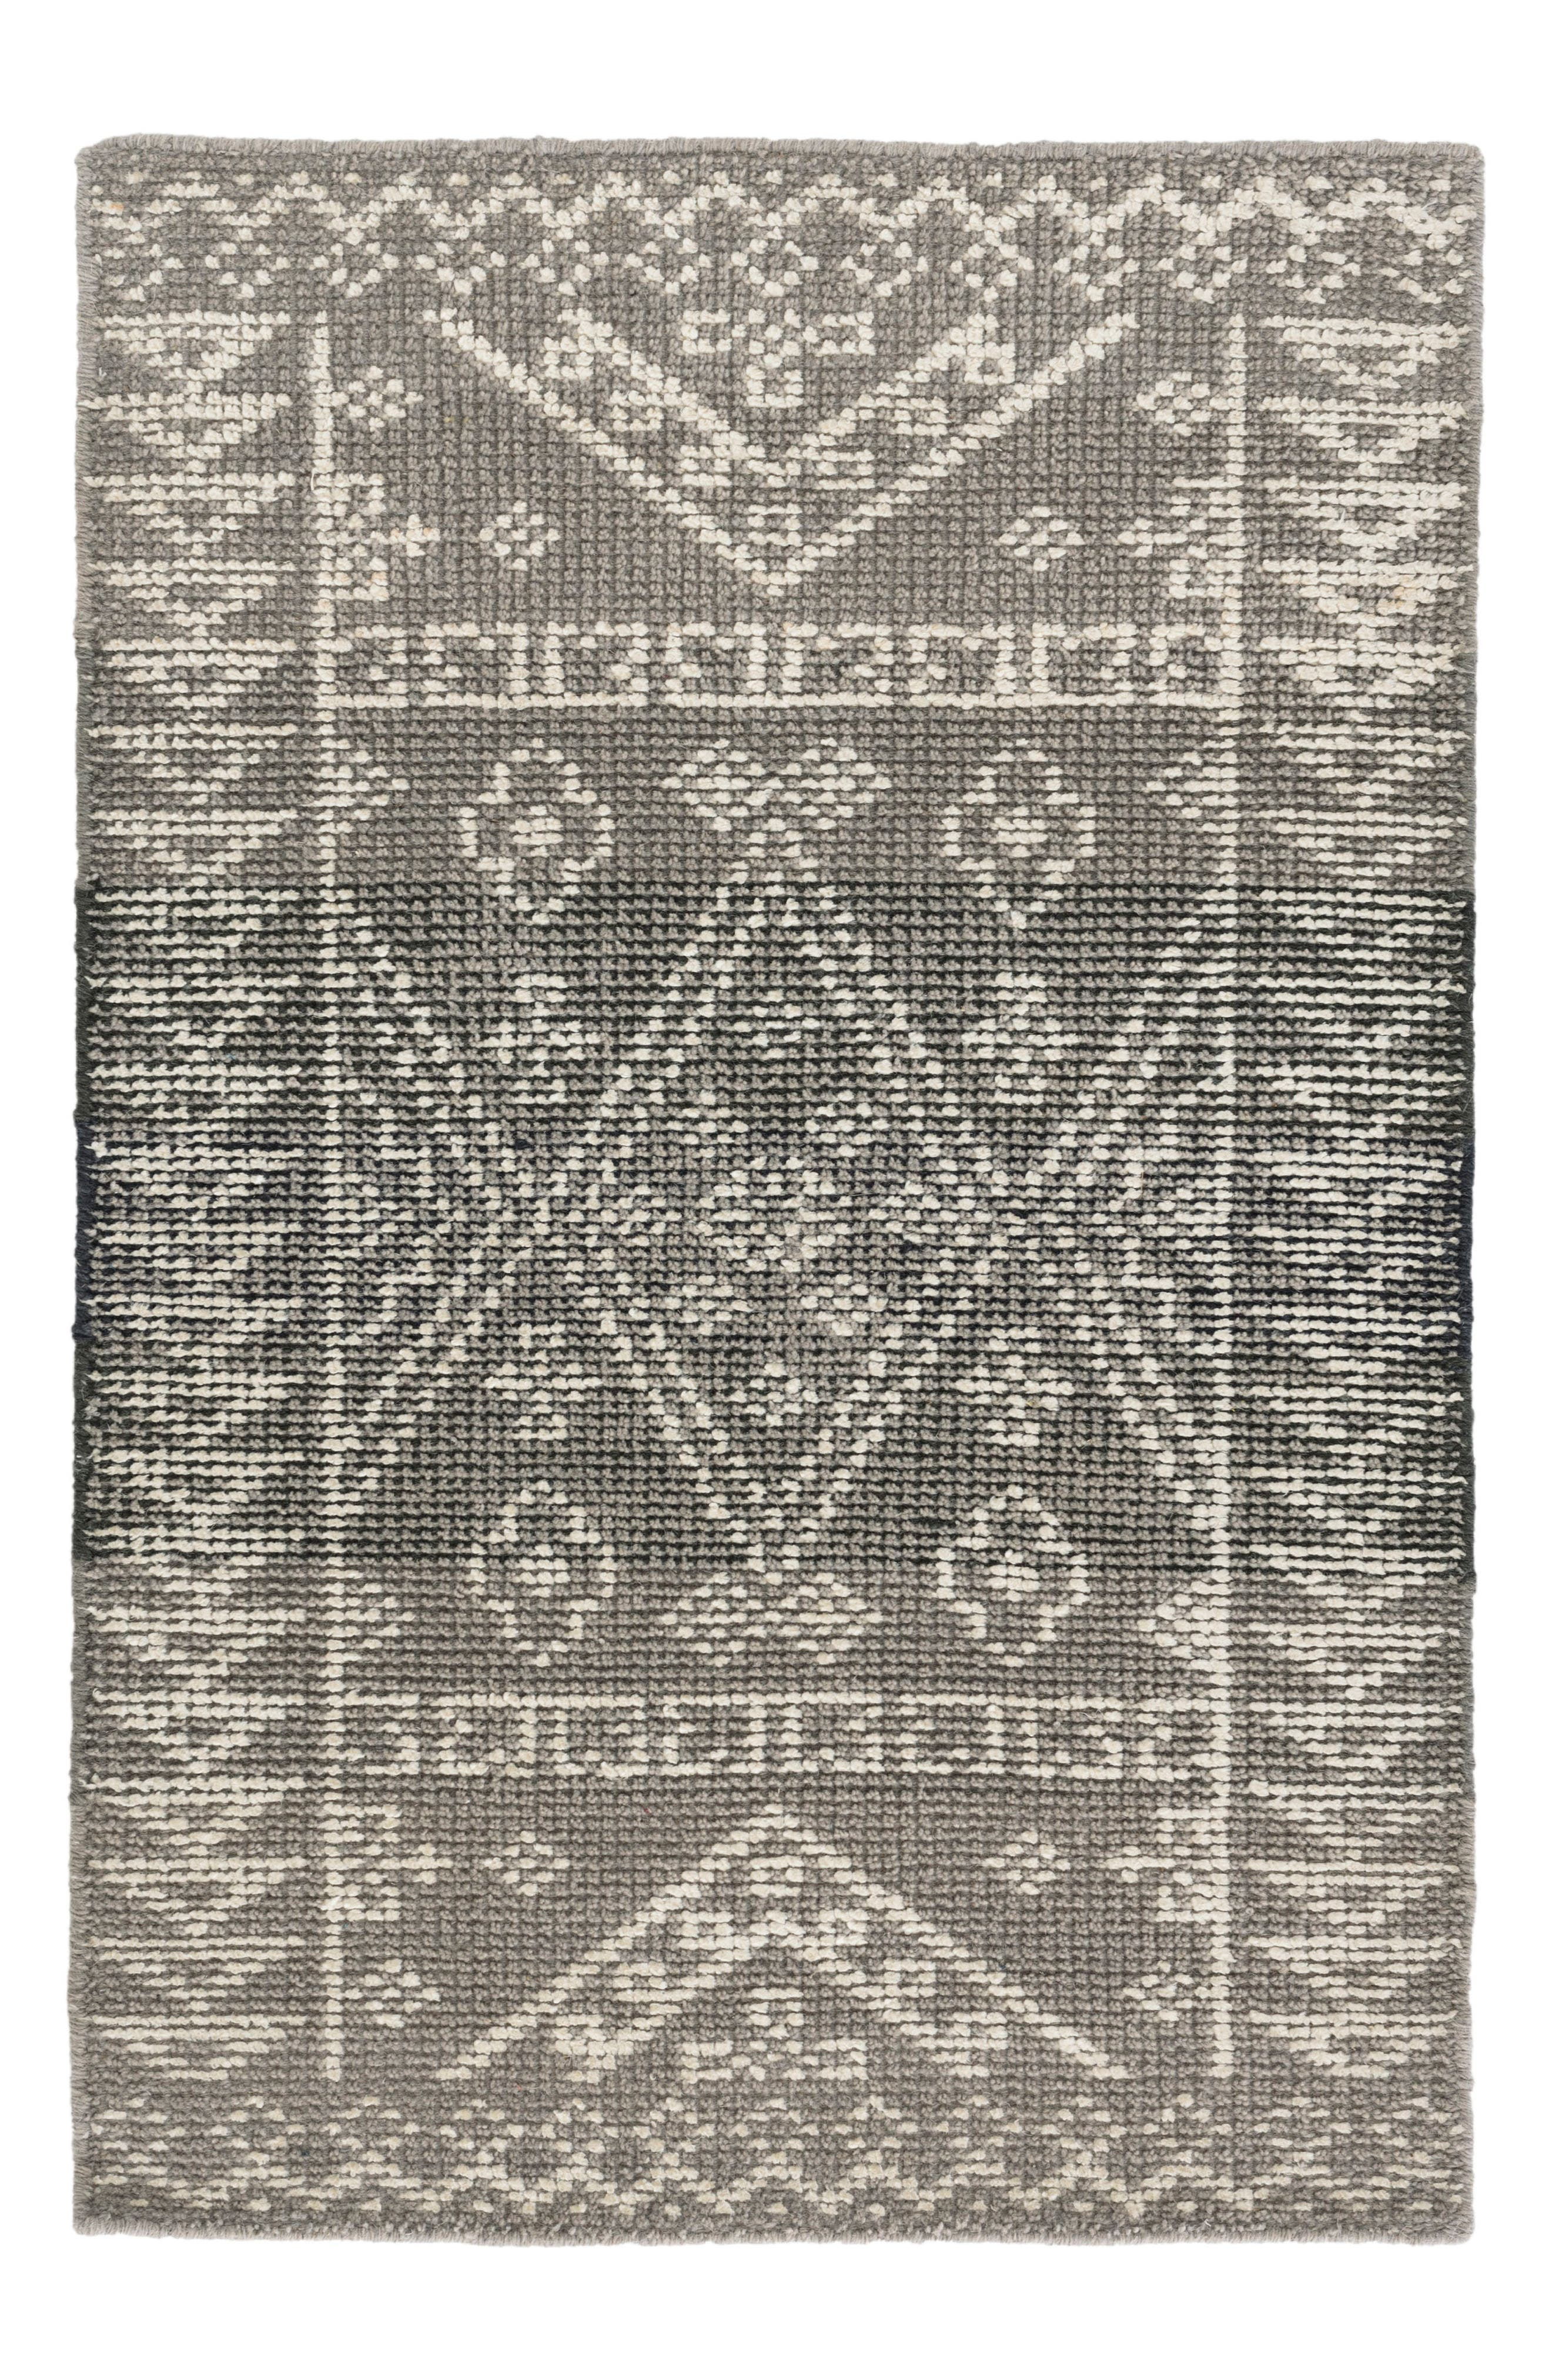 Arelli Hand Knotted Rug,                             Main thumbnail 1, color,                             GREY